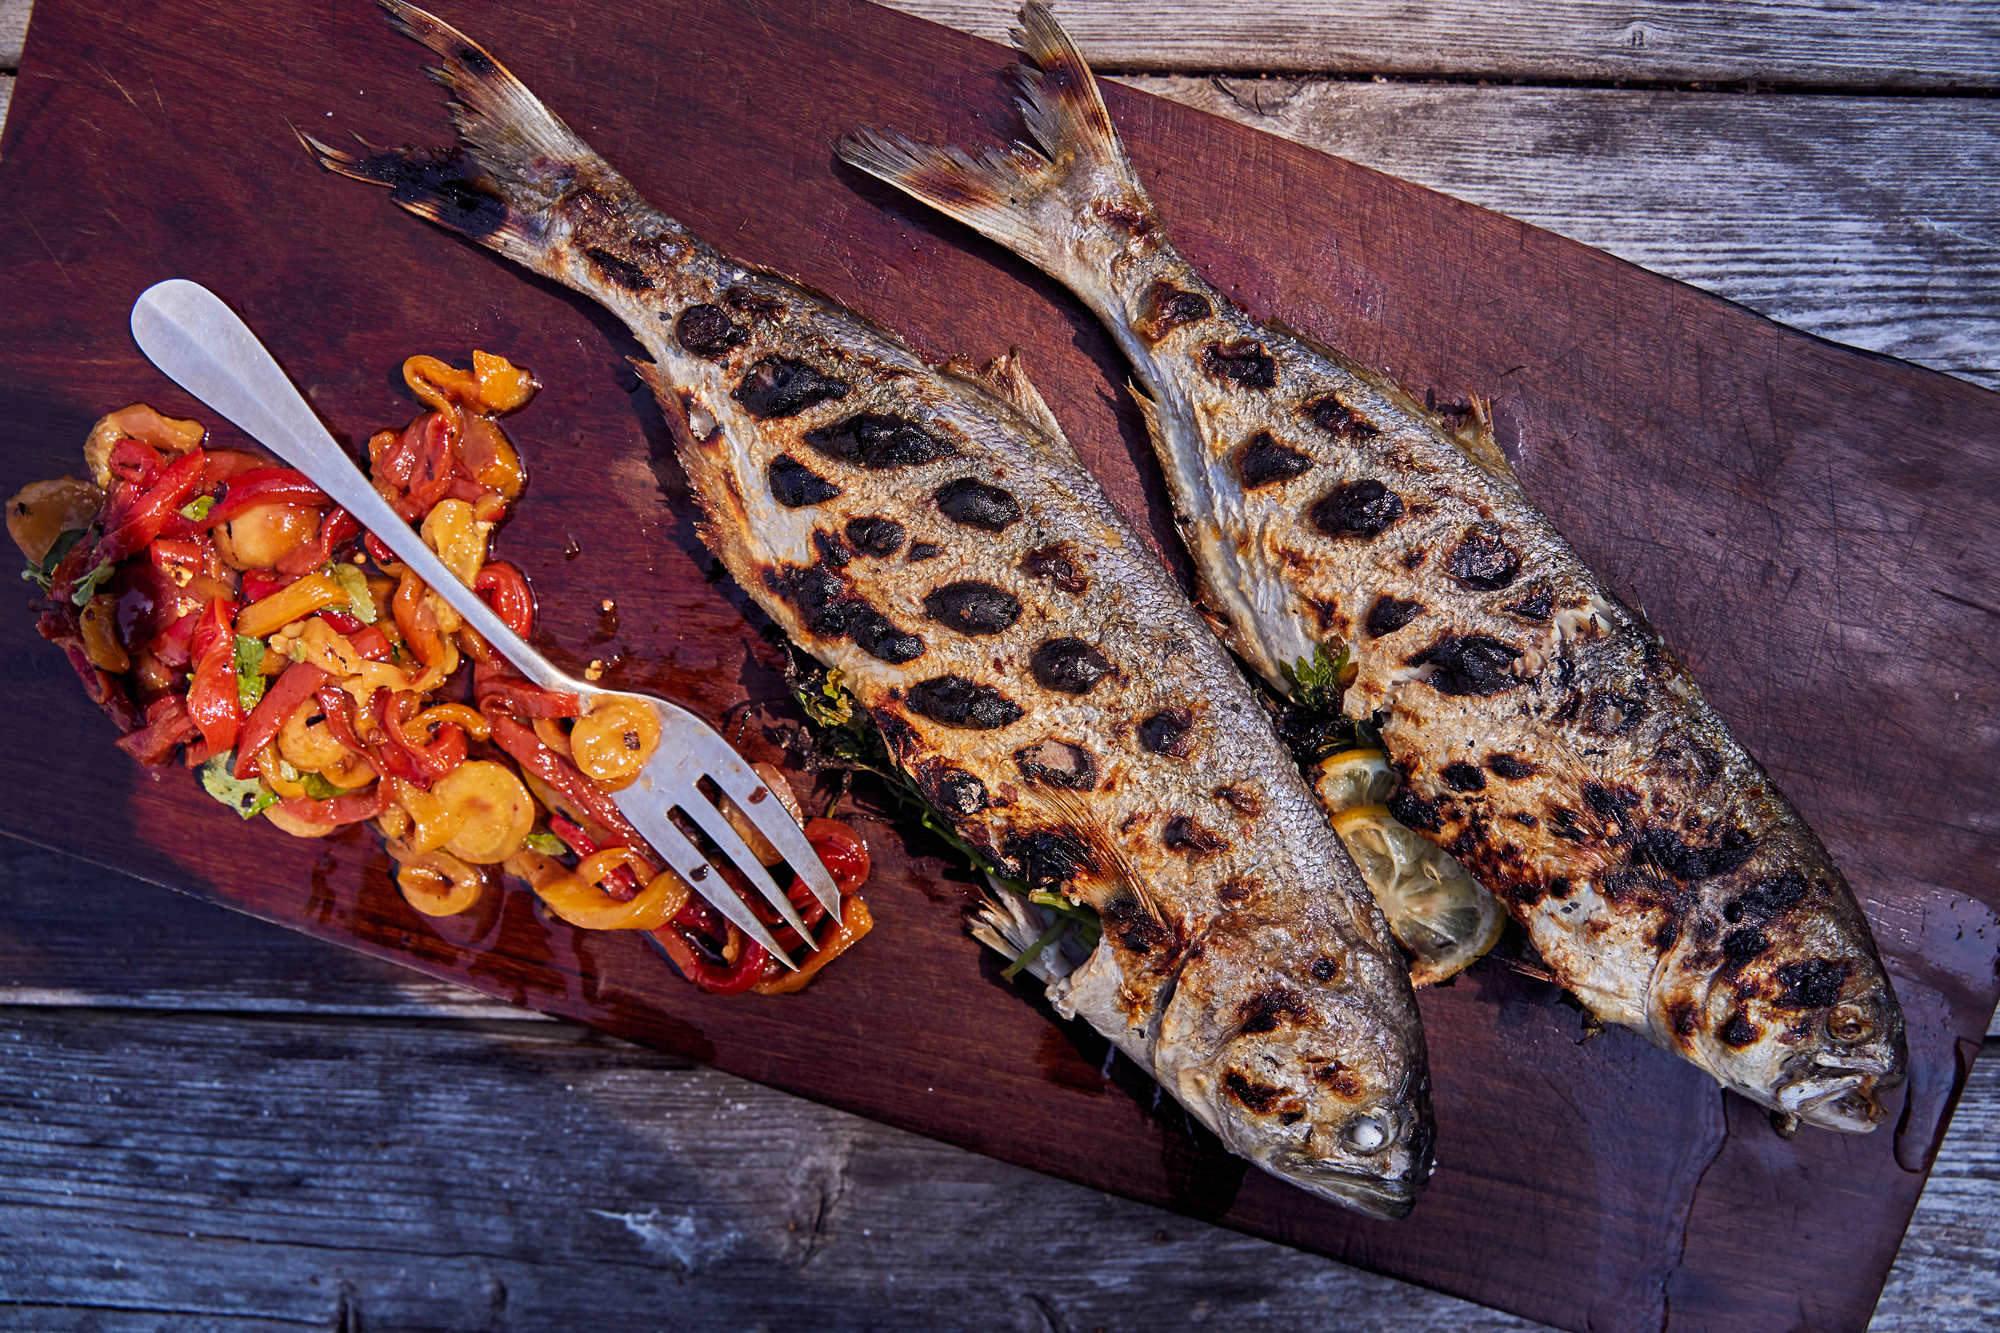 Grilled Bluefish with Charred Cherries and Peppers Recipe